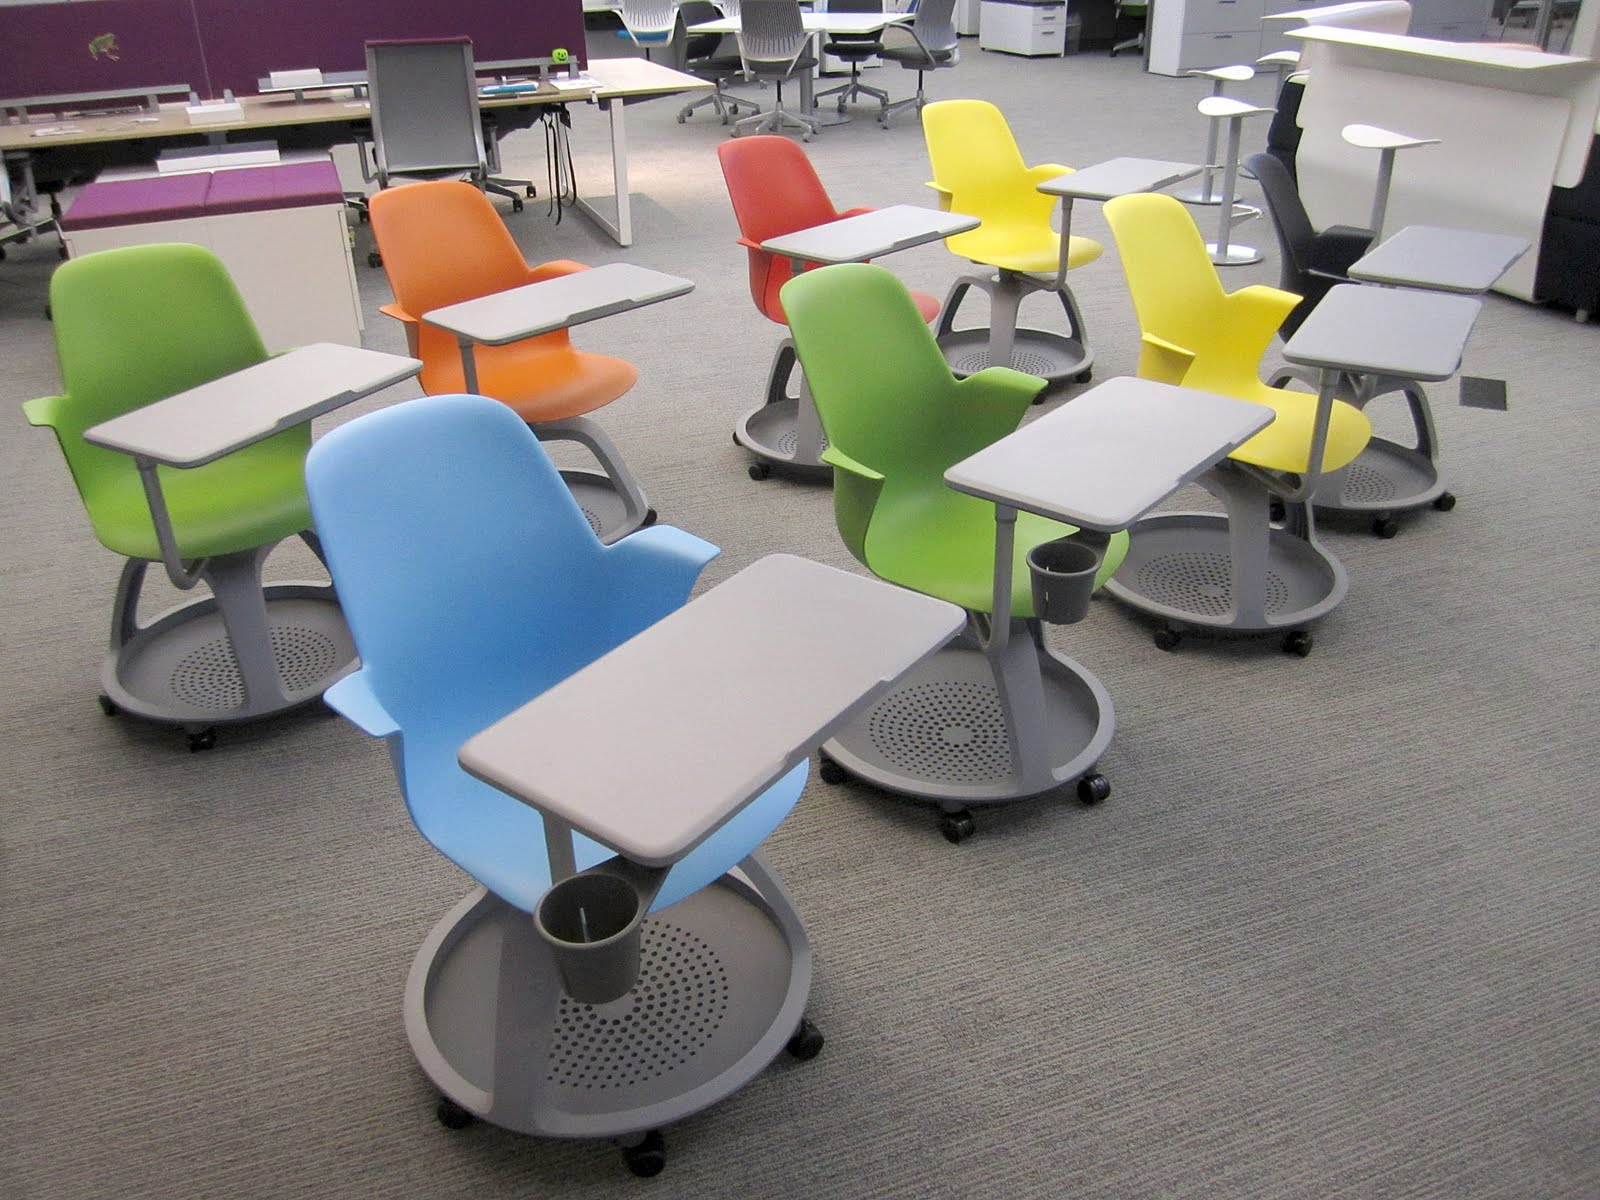 ergonomic furniture in the classroom high back executive chair 1000 43 images about higer ed design on pinterest